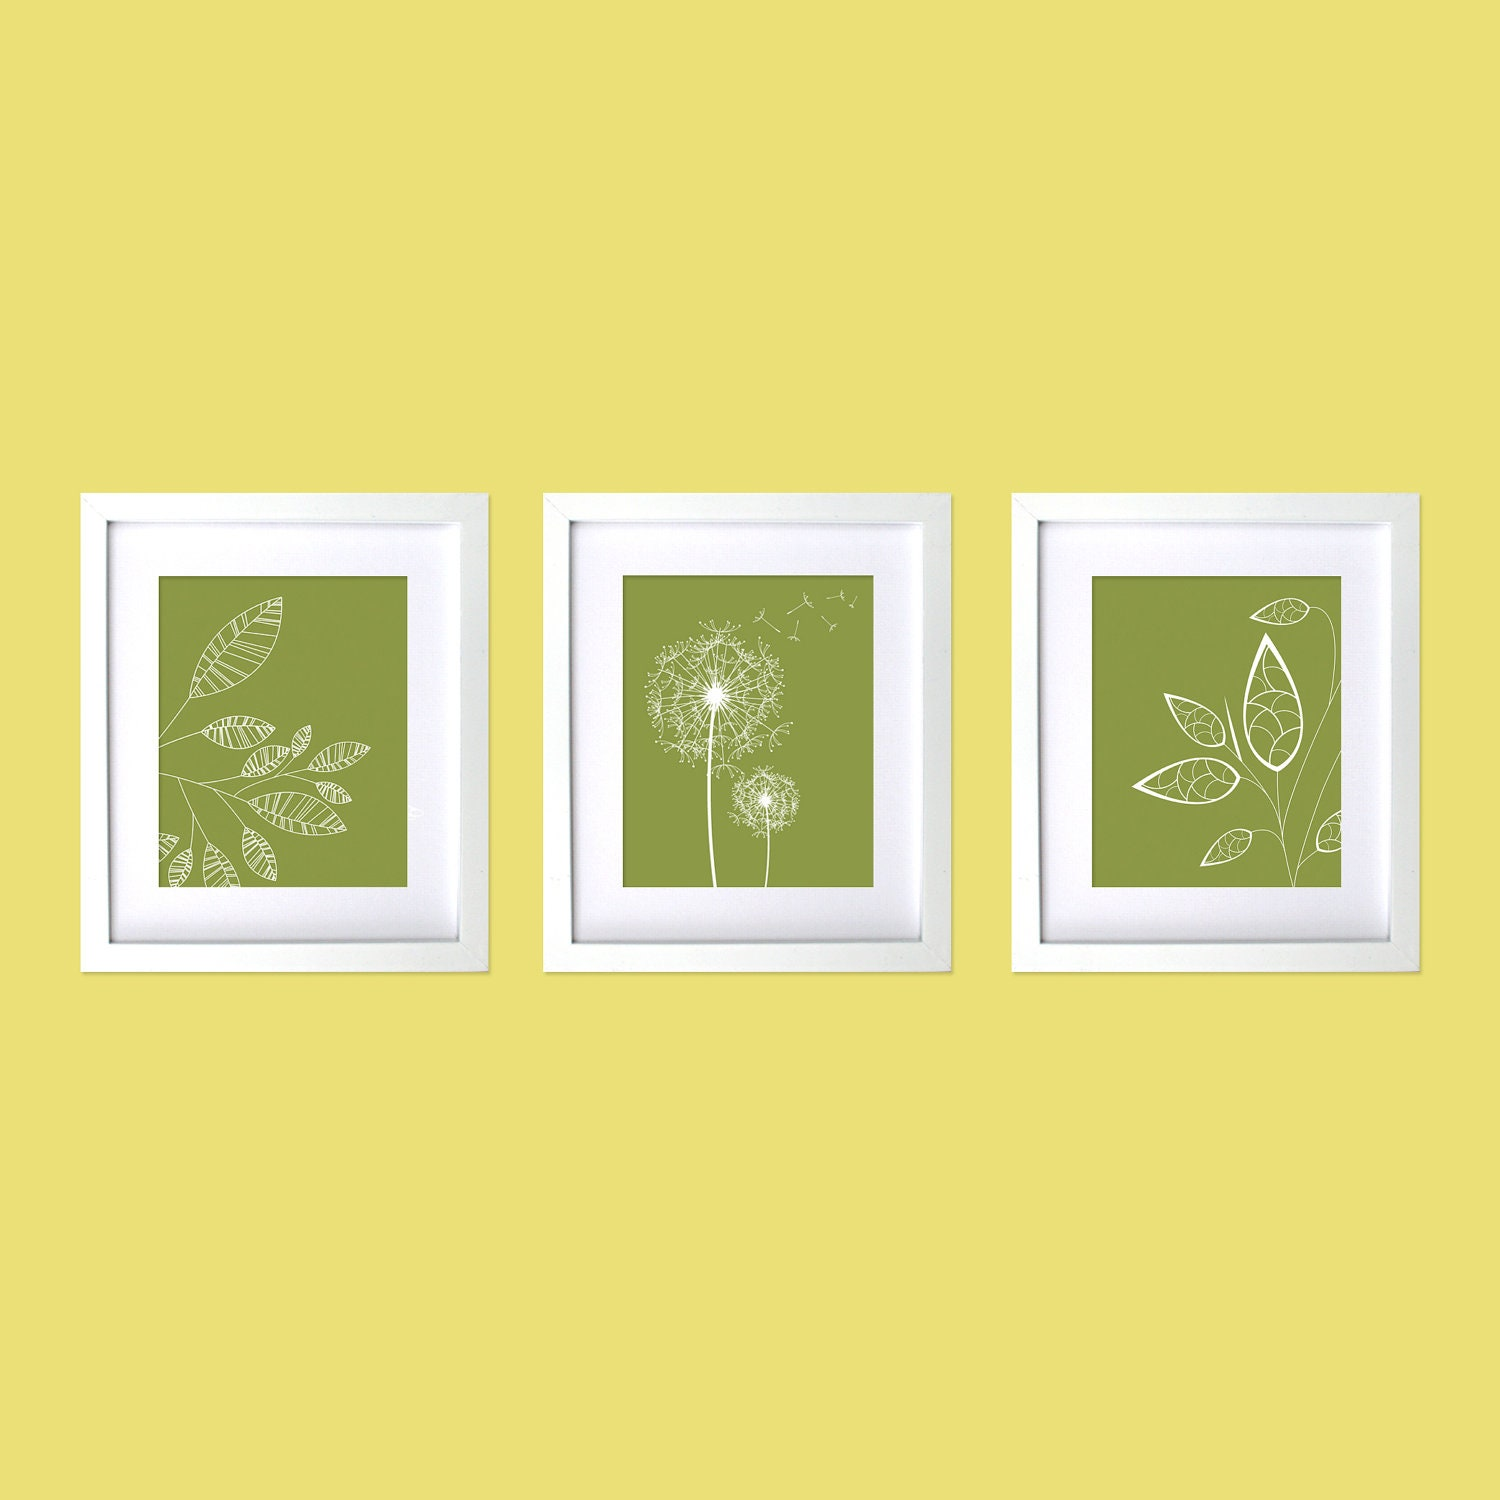 Popular items for modern wall decor on Etsy